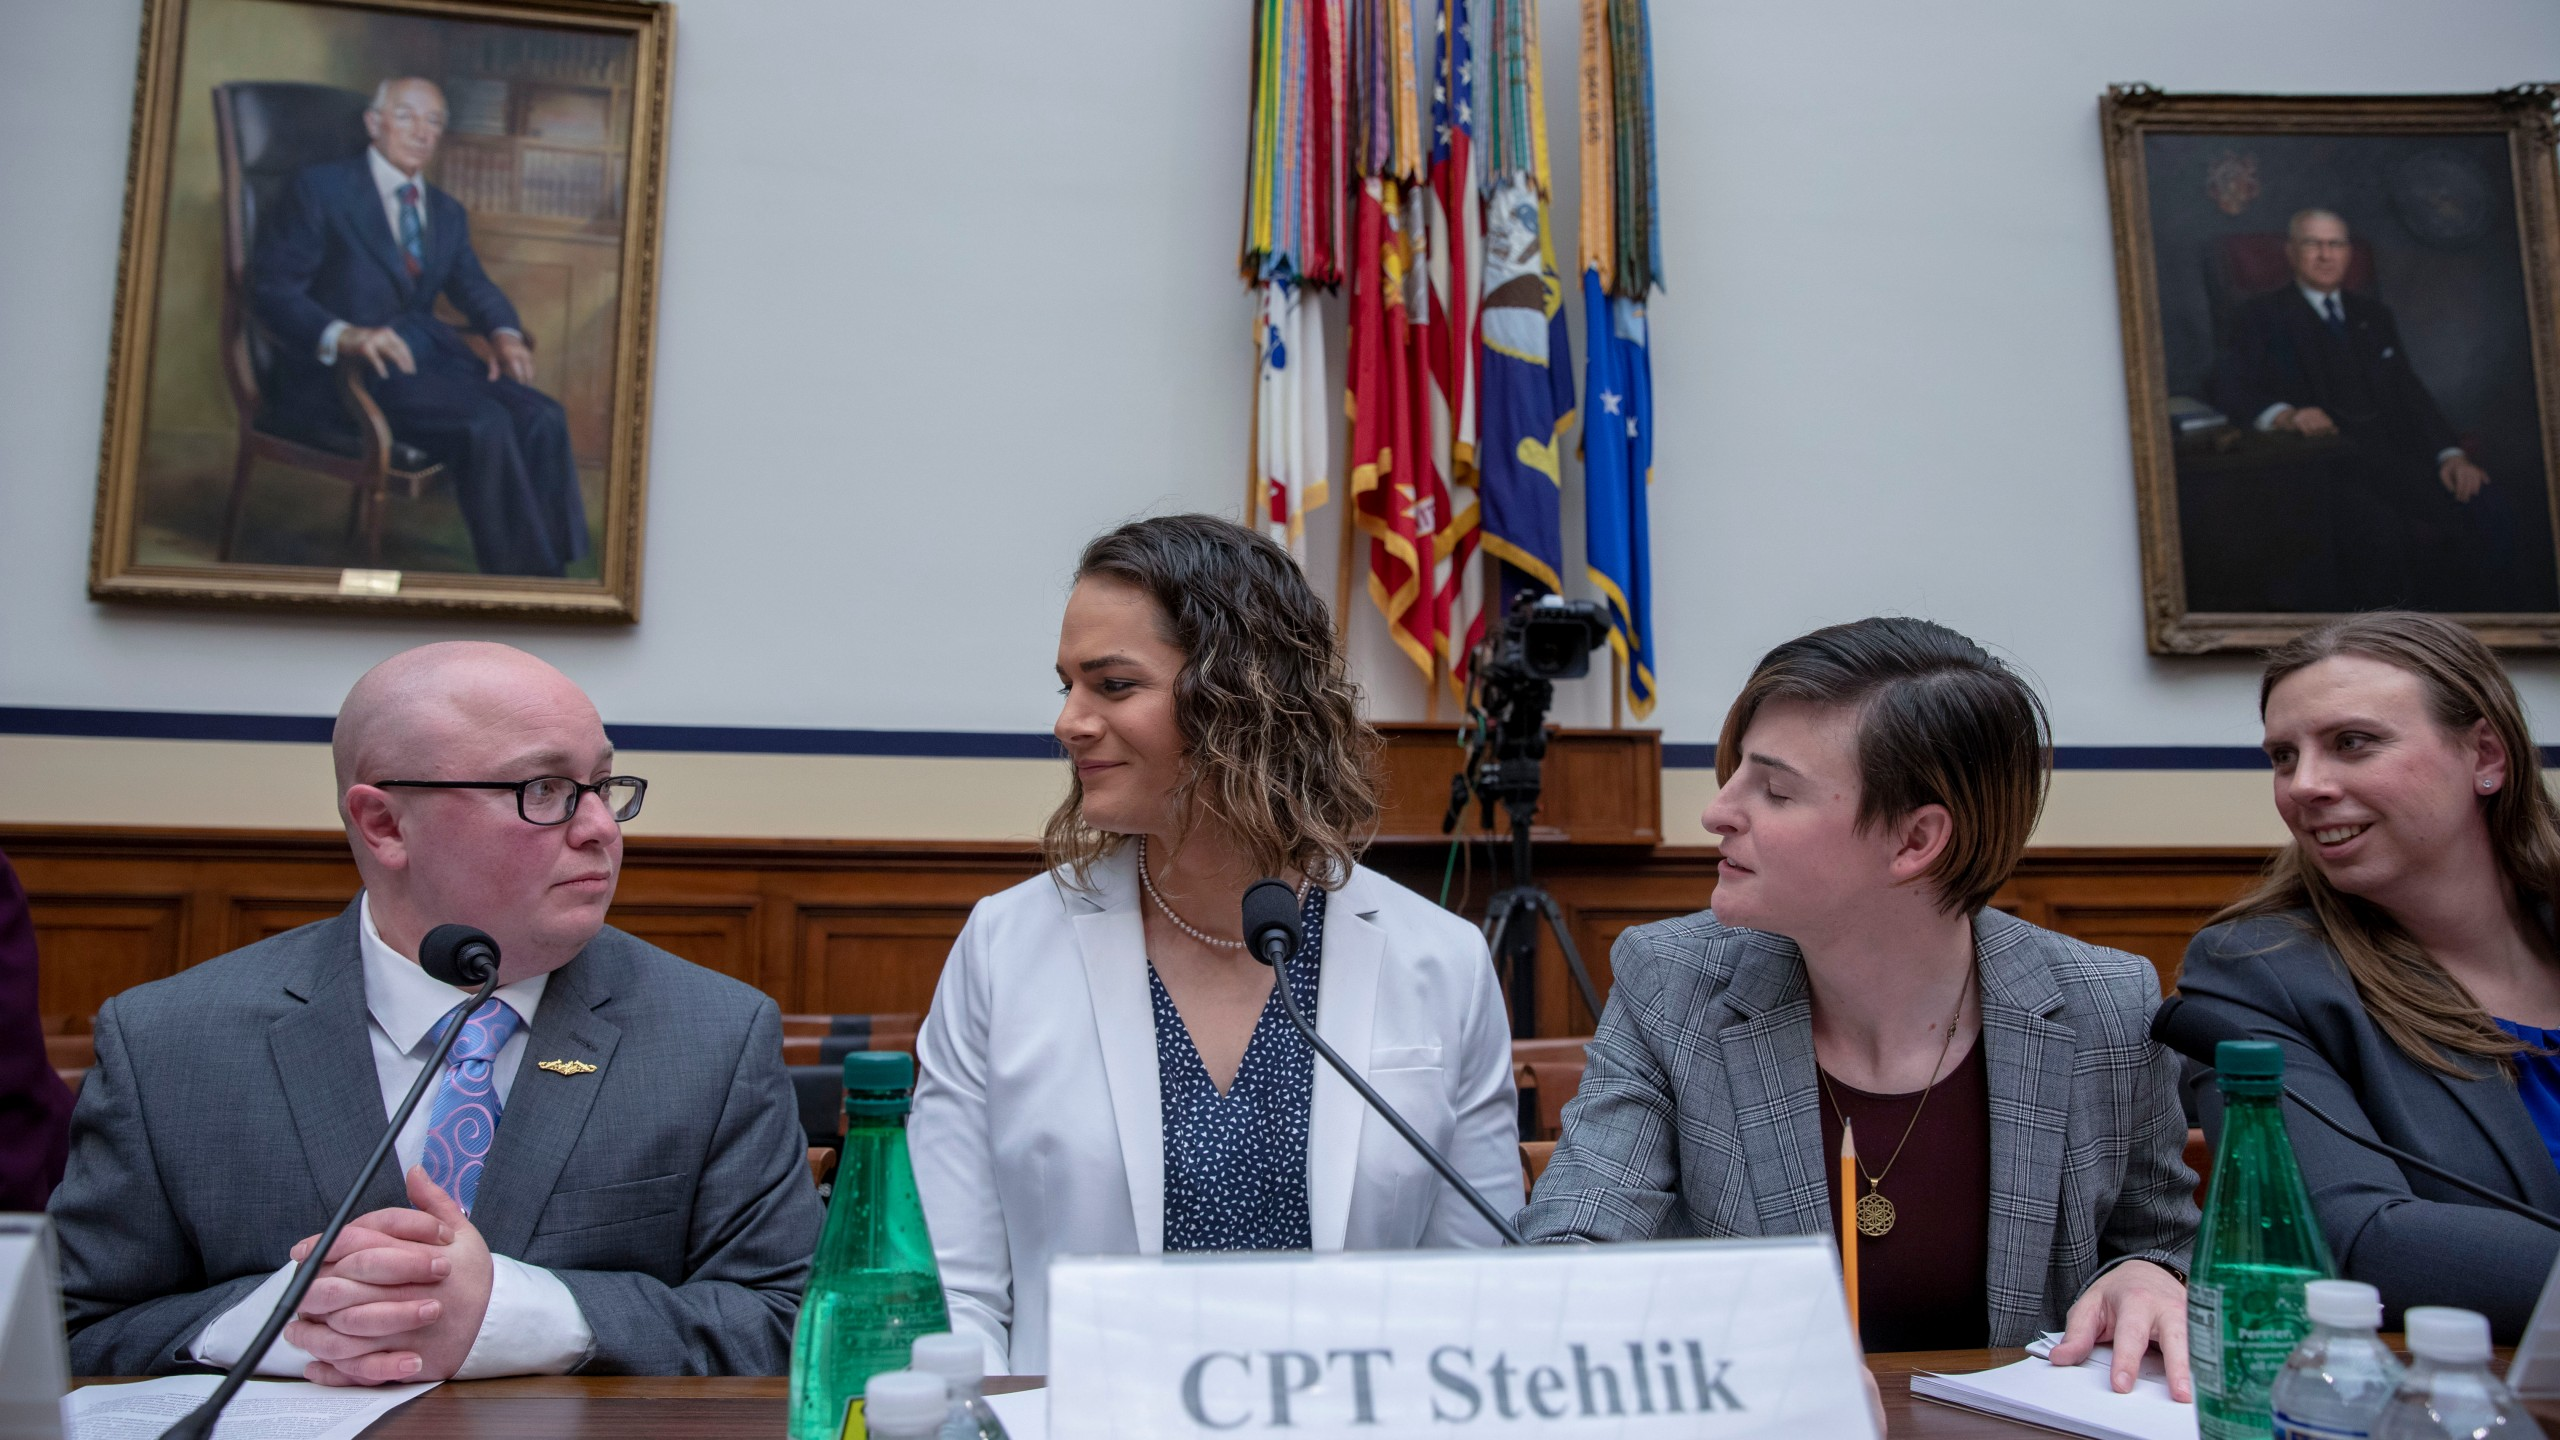 """Navy Lt. Commander Blake Dremann, Army Capt. Alivia Stehlik, Army Capt. Jennifer Peace and Army Staff Sgt. Patricia King at the Military Personnel Subcommittee hearing on """"Transgender Service Policy"""" on Capital Hill on Feb. 27, 2019, in Washington, D.C. (Credit: Tasos Katopodis/Getty Images)"""